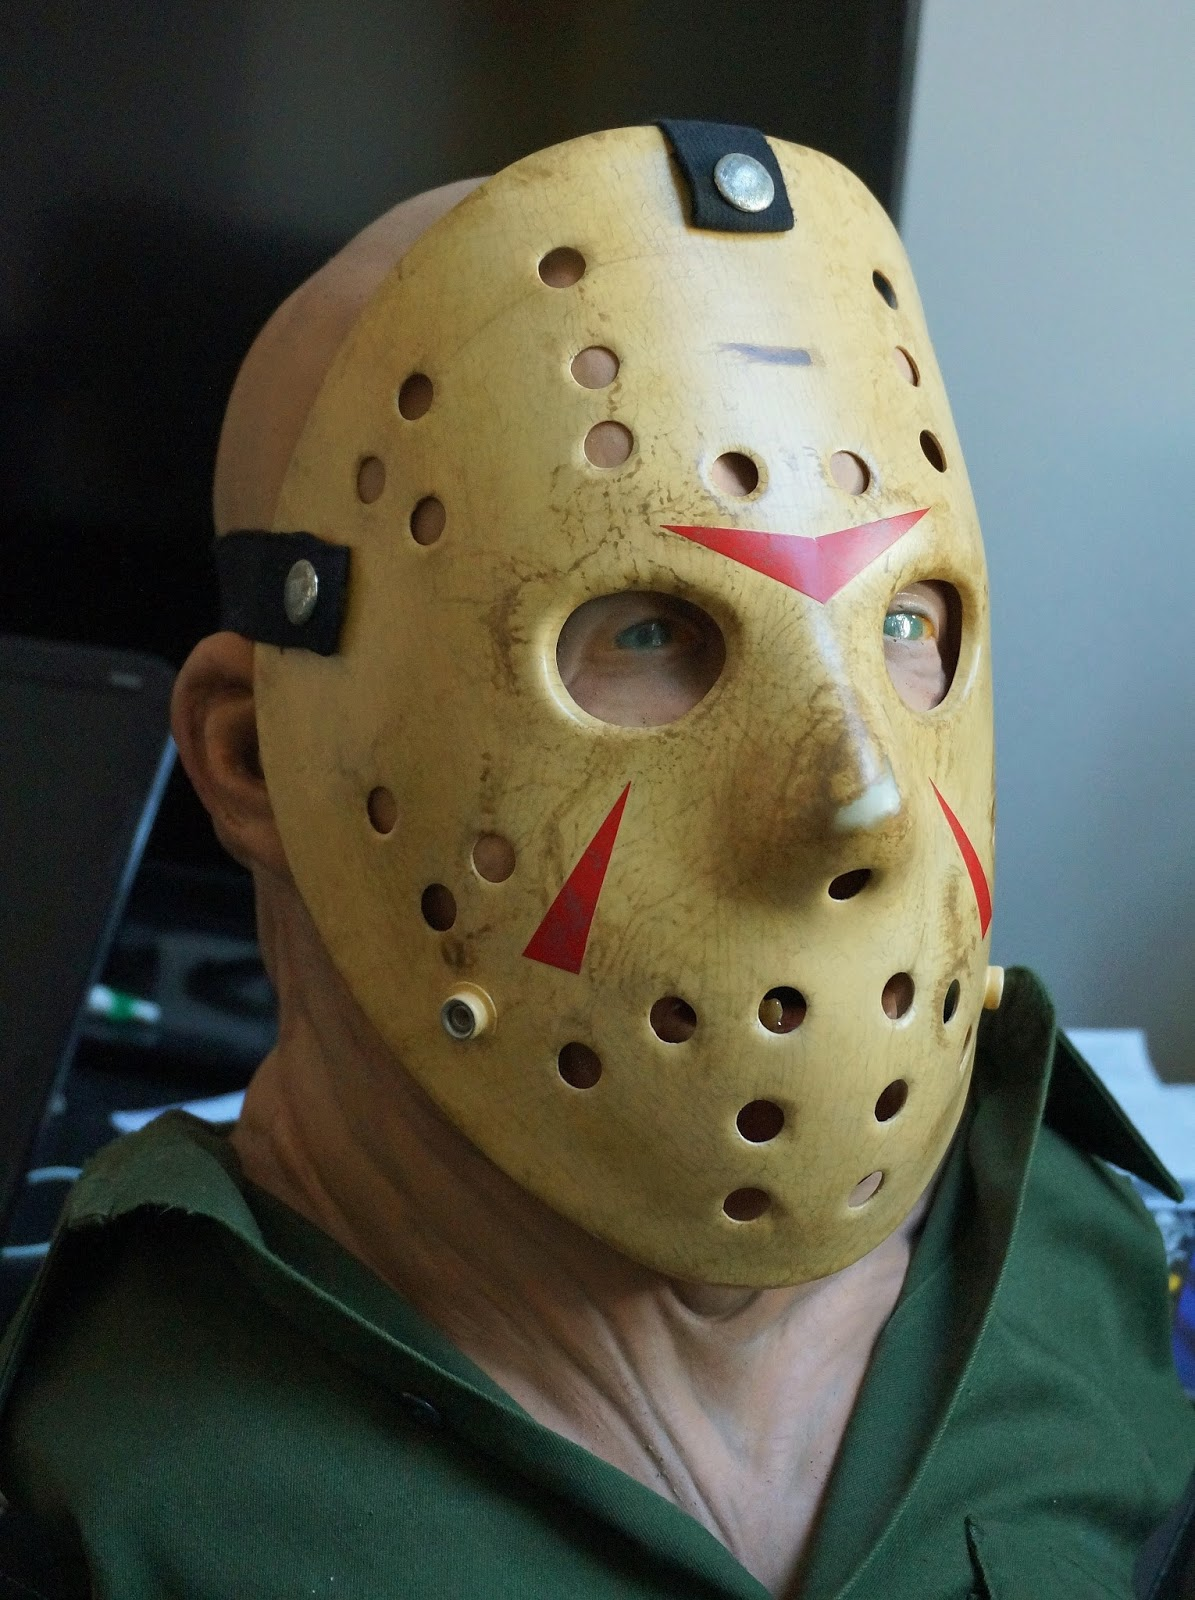 Jasonlivessince1980 S Friday The 13th Blog Closeups Of Part 3 Hock